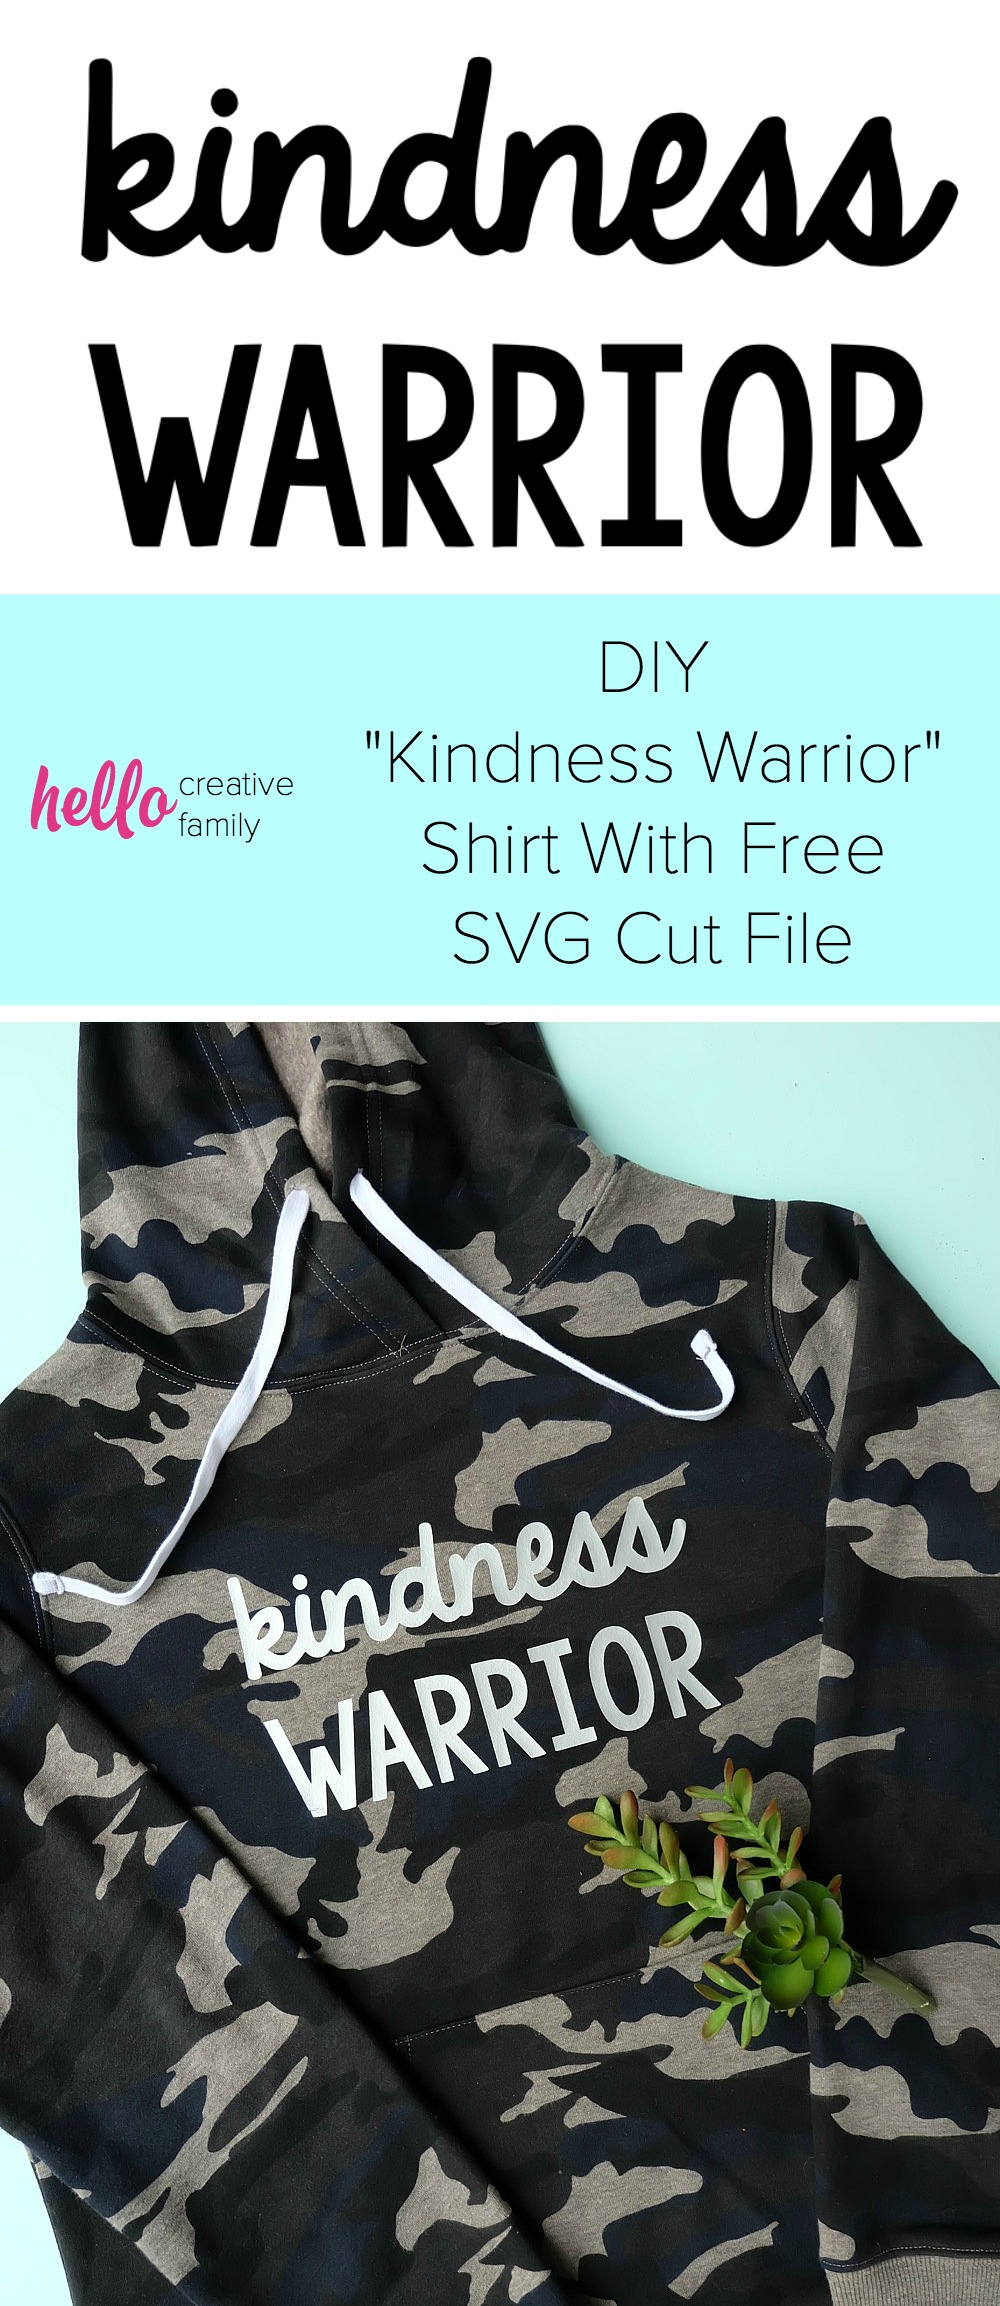 The world needs more kindness! Let's create an army of kindness with this easy to make DIY Kindness Warrior Shirt. Includes step by step instructions on how to make this project using a Cricut, along with a free SVG cut file compatible with Cricut or Silhouette. The perfect hoodie for kids or adults to spread love instead of hate, discourage bullying and make the world a better place. #DIY #Cricut #Silhouette #SVG #CricutMade